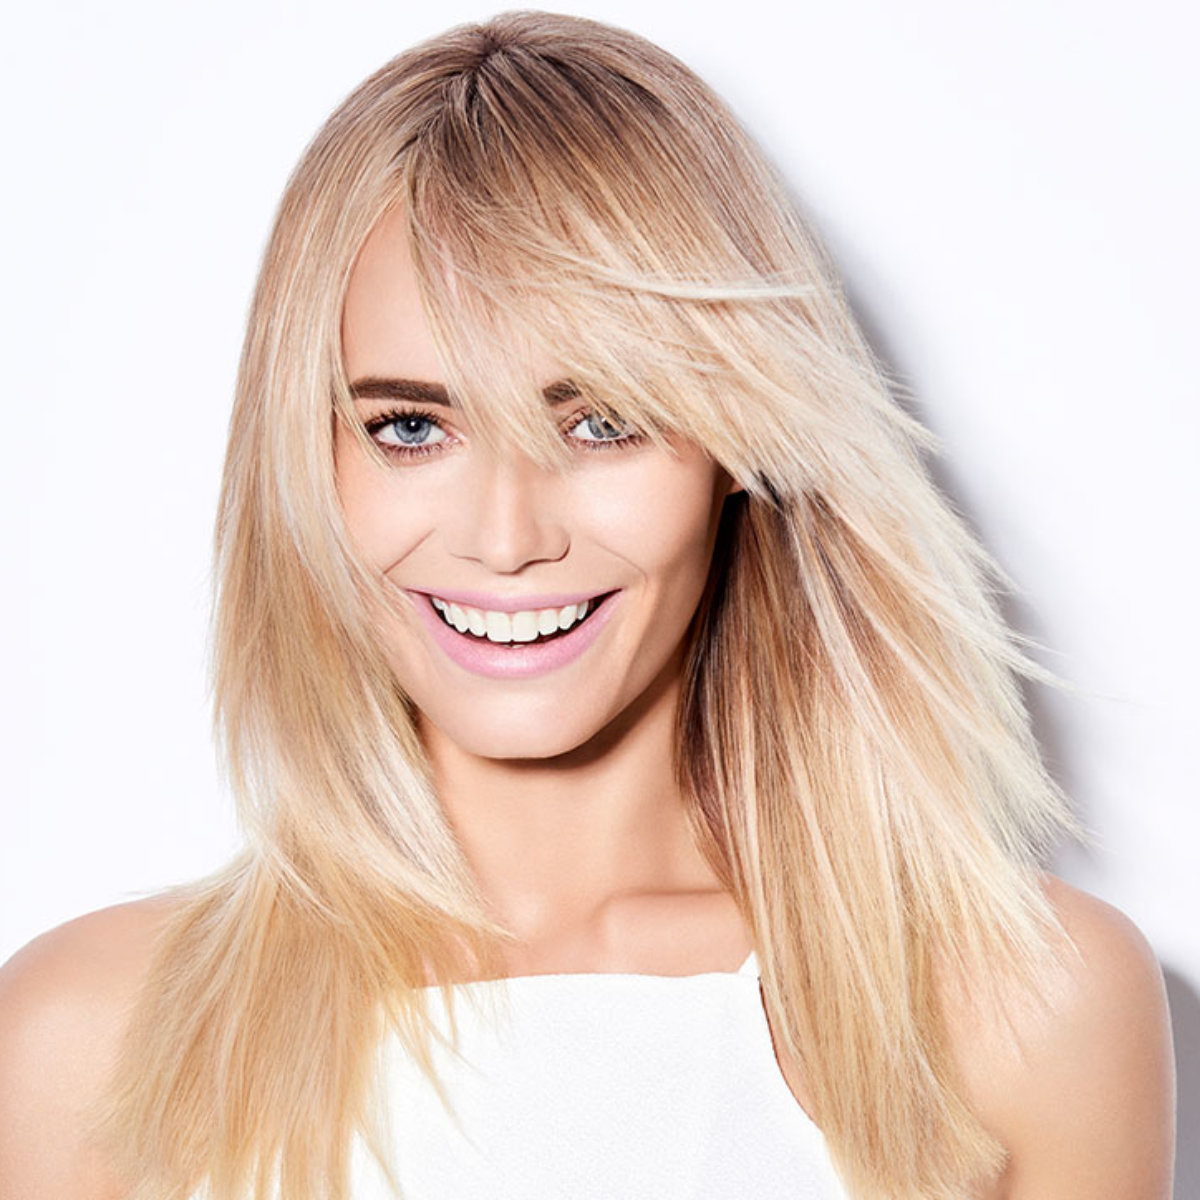 Sunkissed coastal blonde hair color technique model after